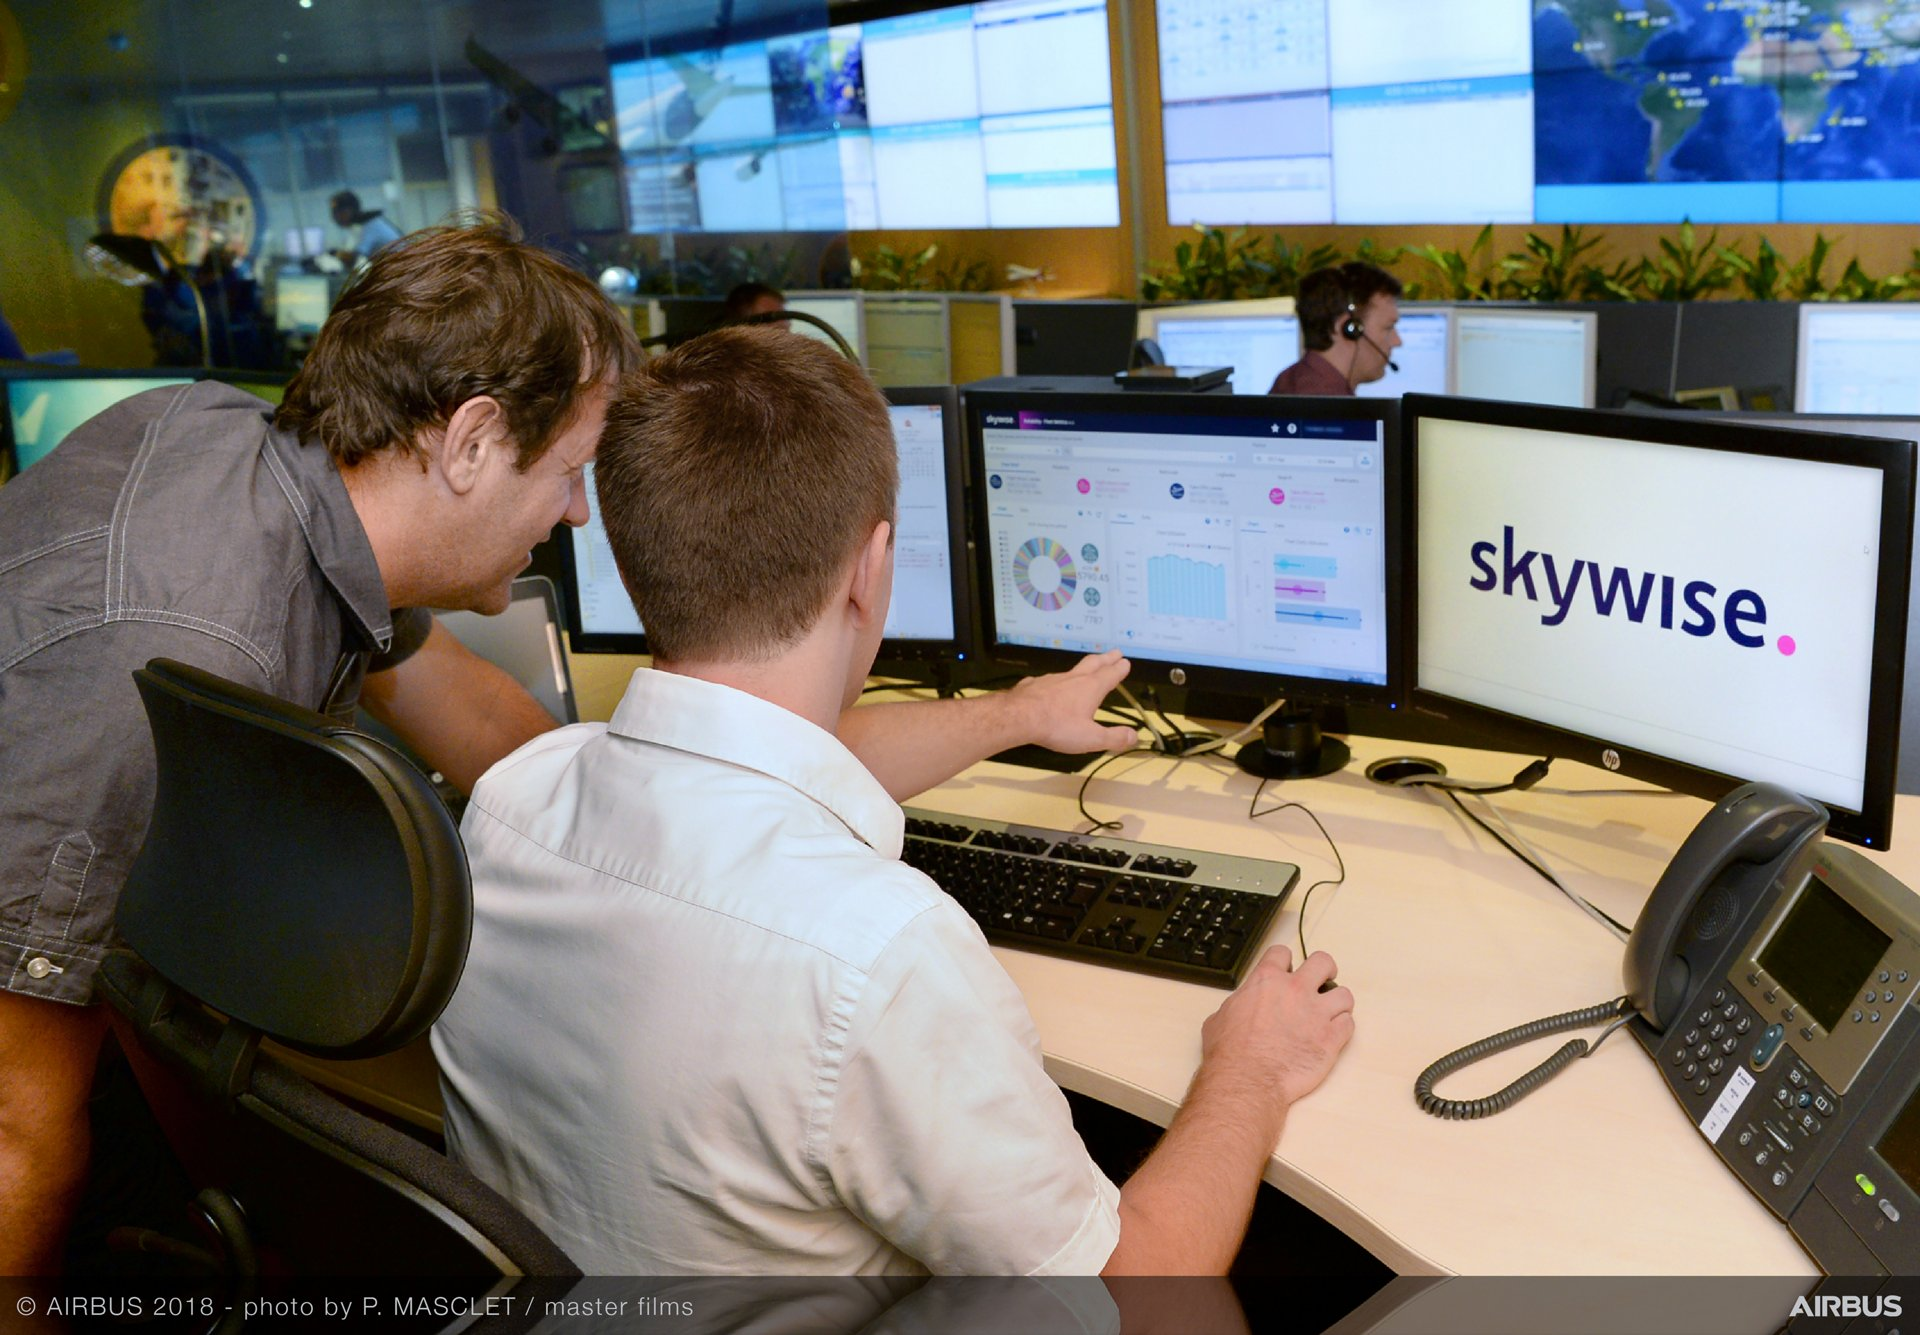 As aviation's open data platform, Skywise provides all users with one single access point to their enriched data by bringing aviation data from multiple sources across the industry into one secure cloud-based platform